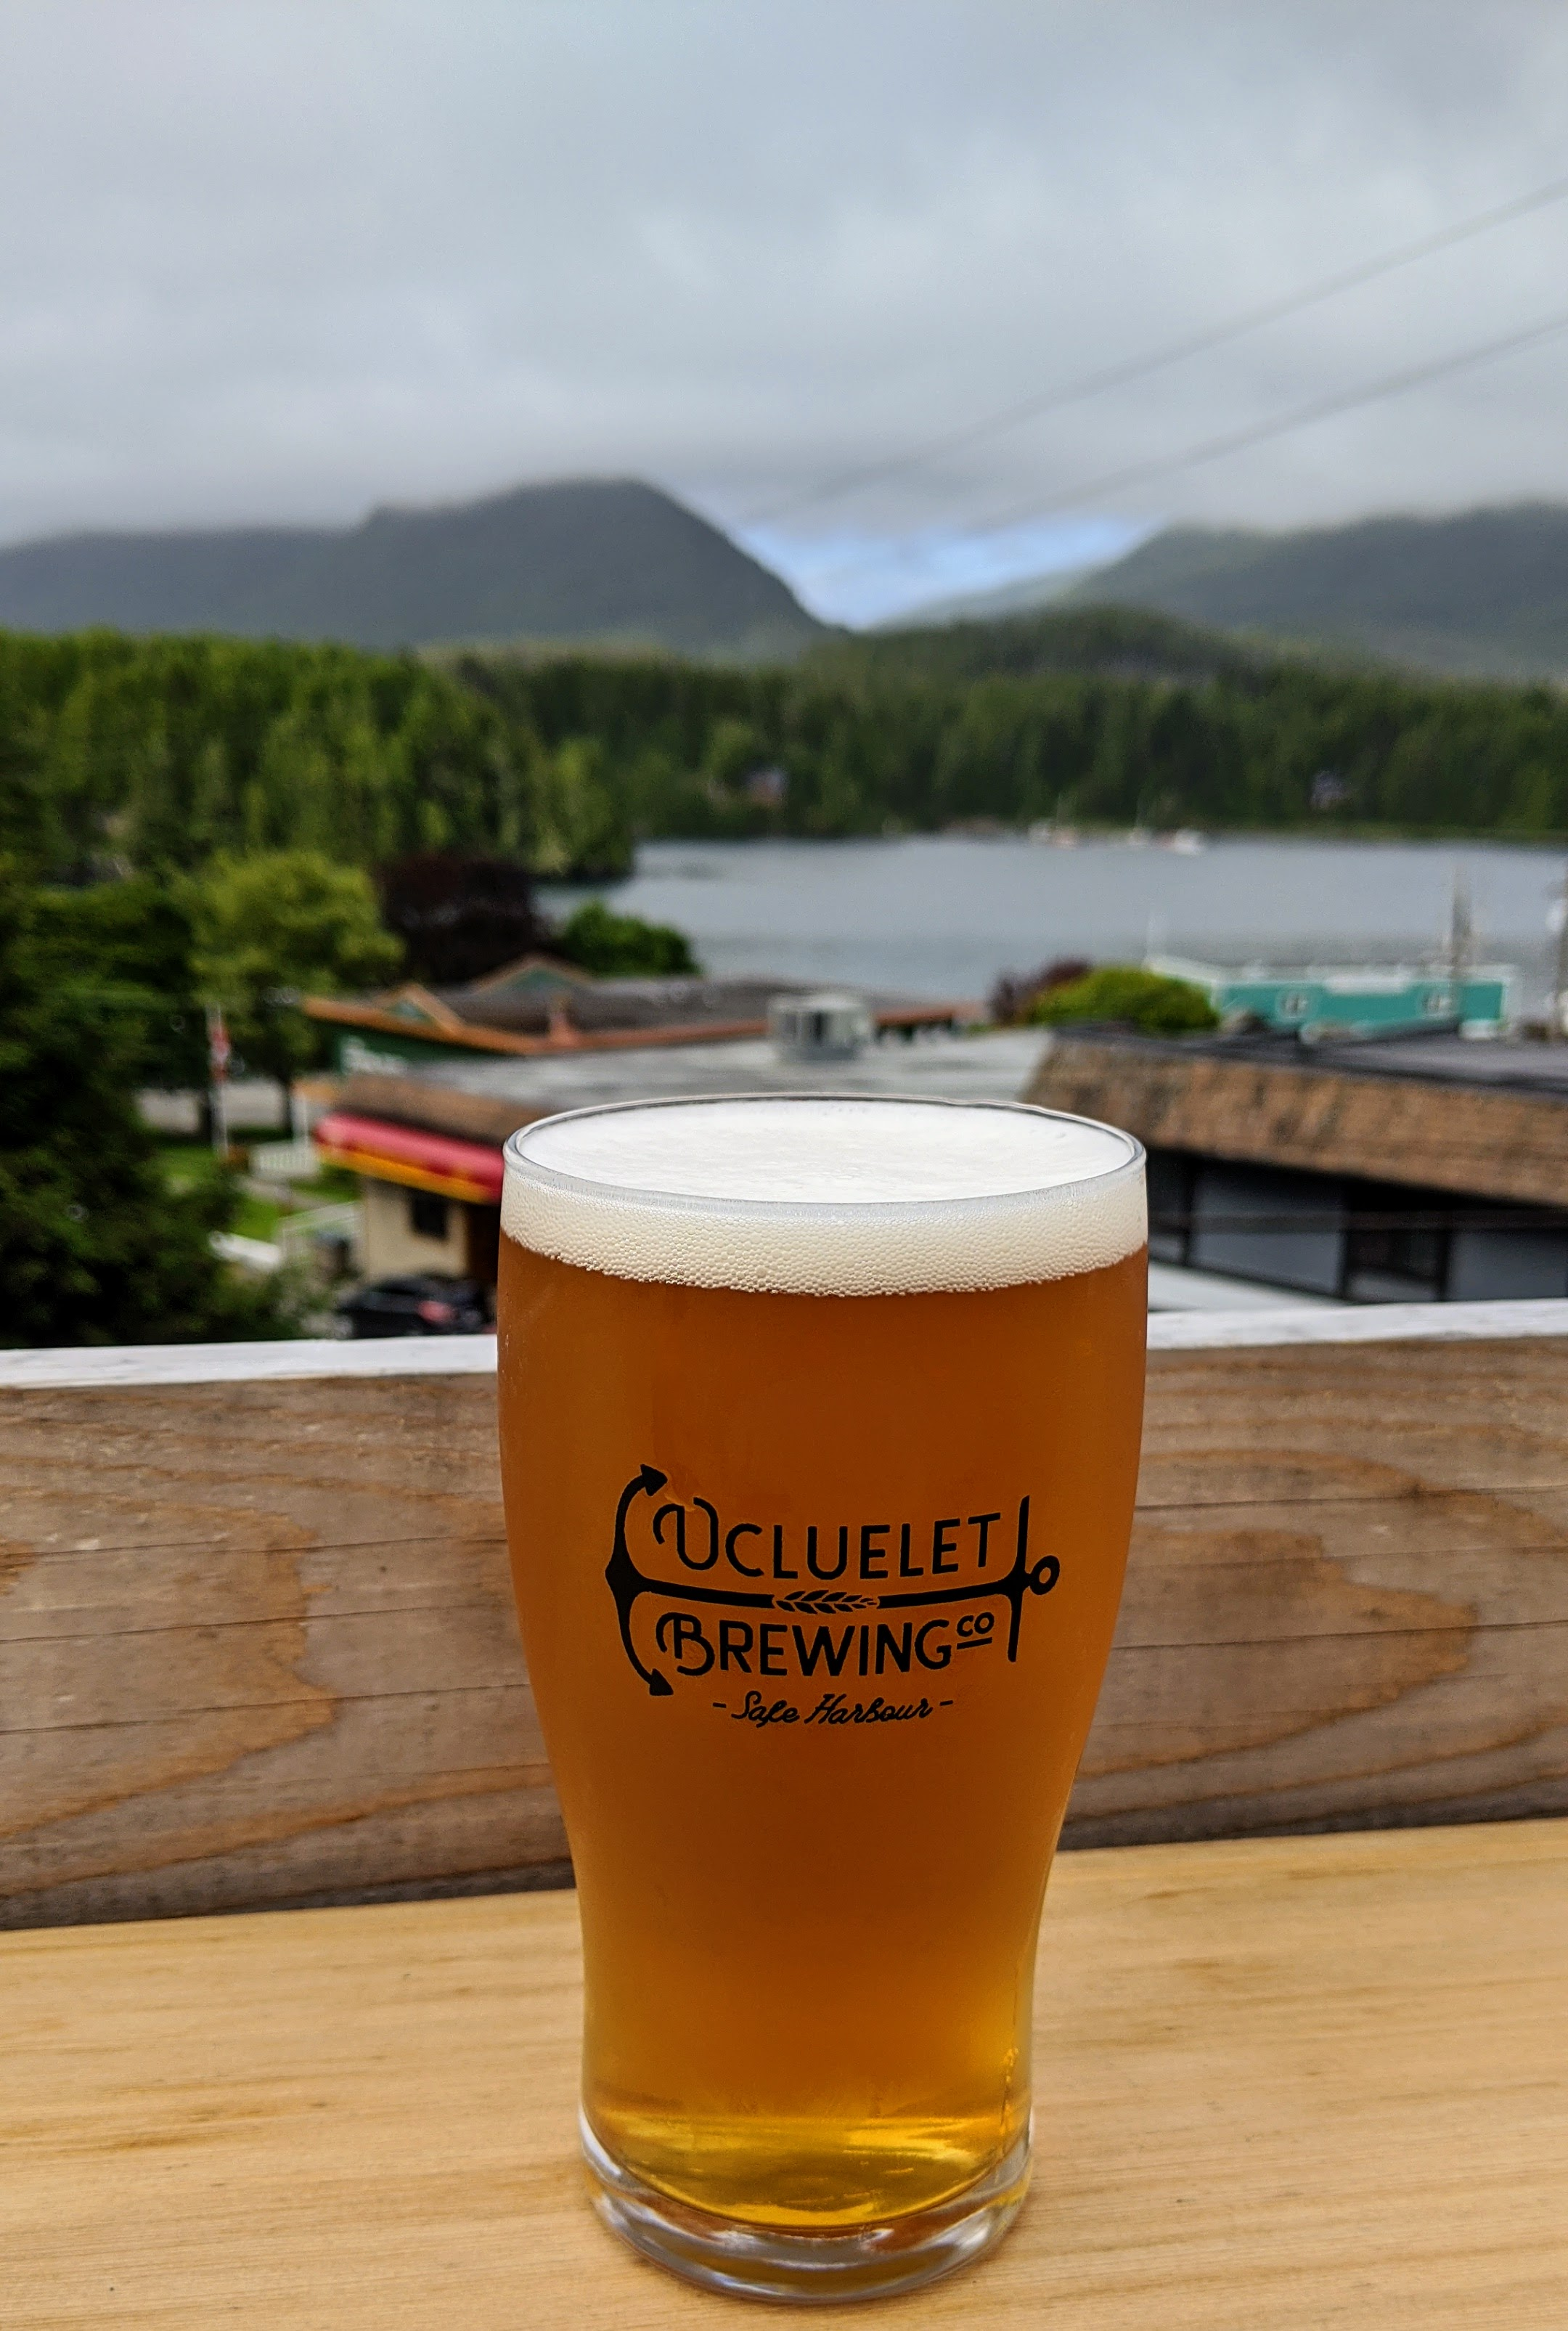 Enjoying a beer at Ucluelet Brewing